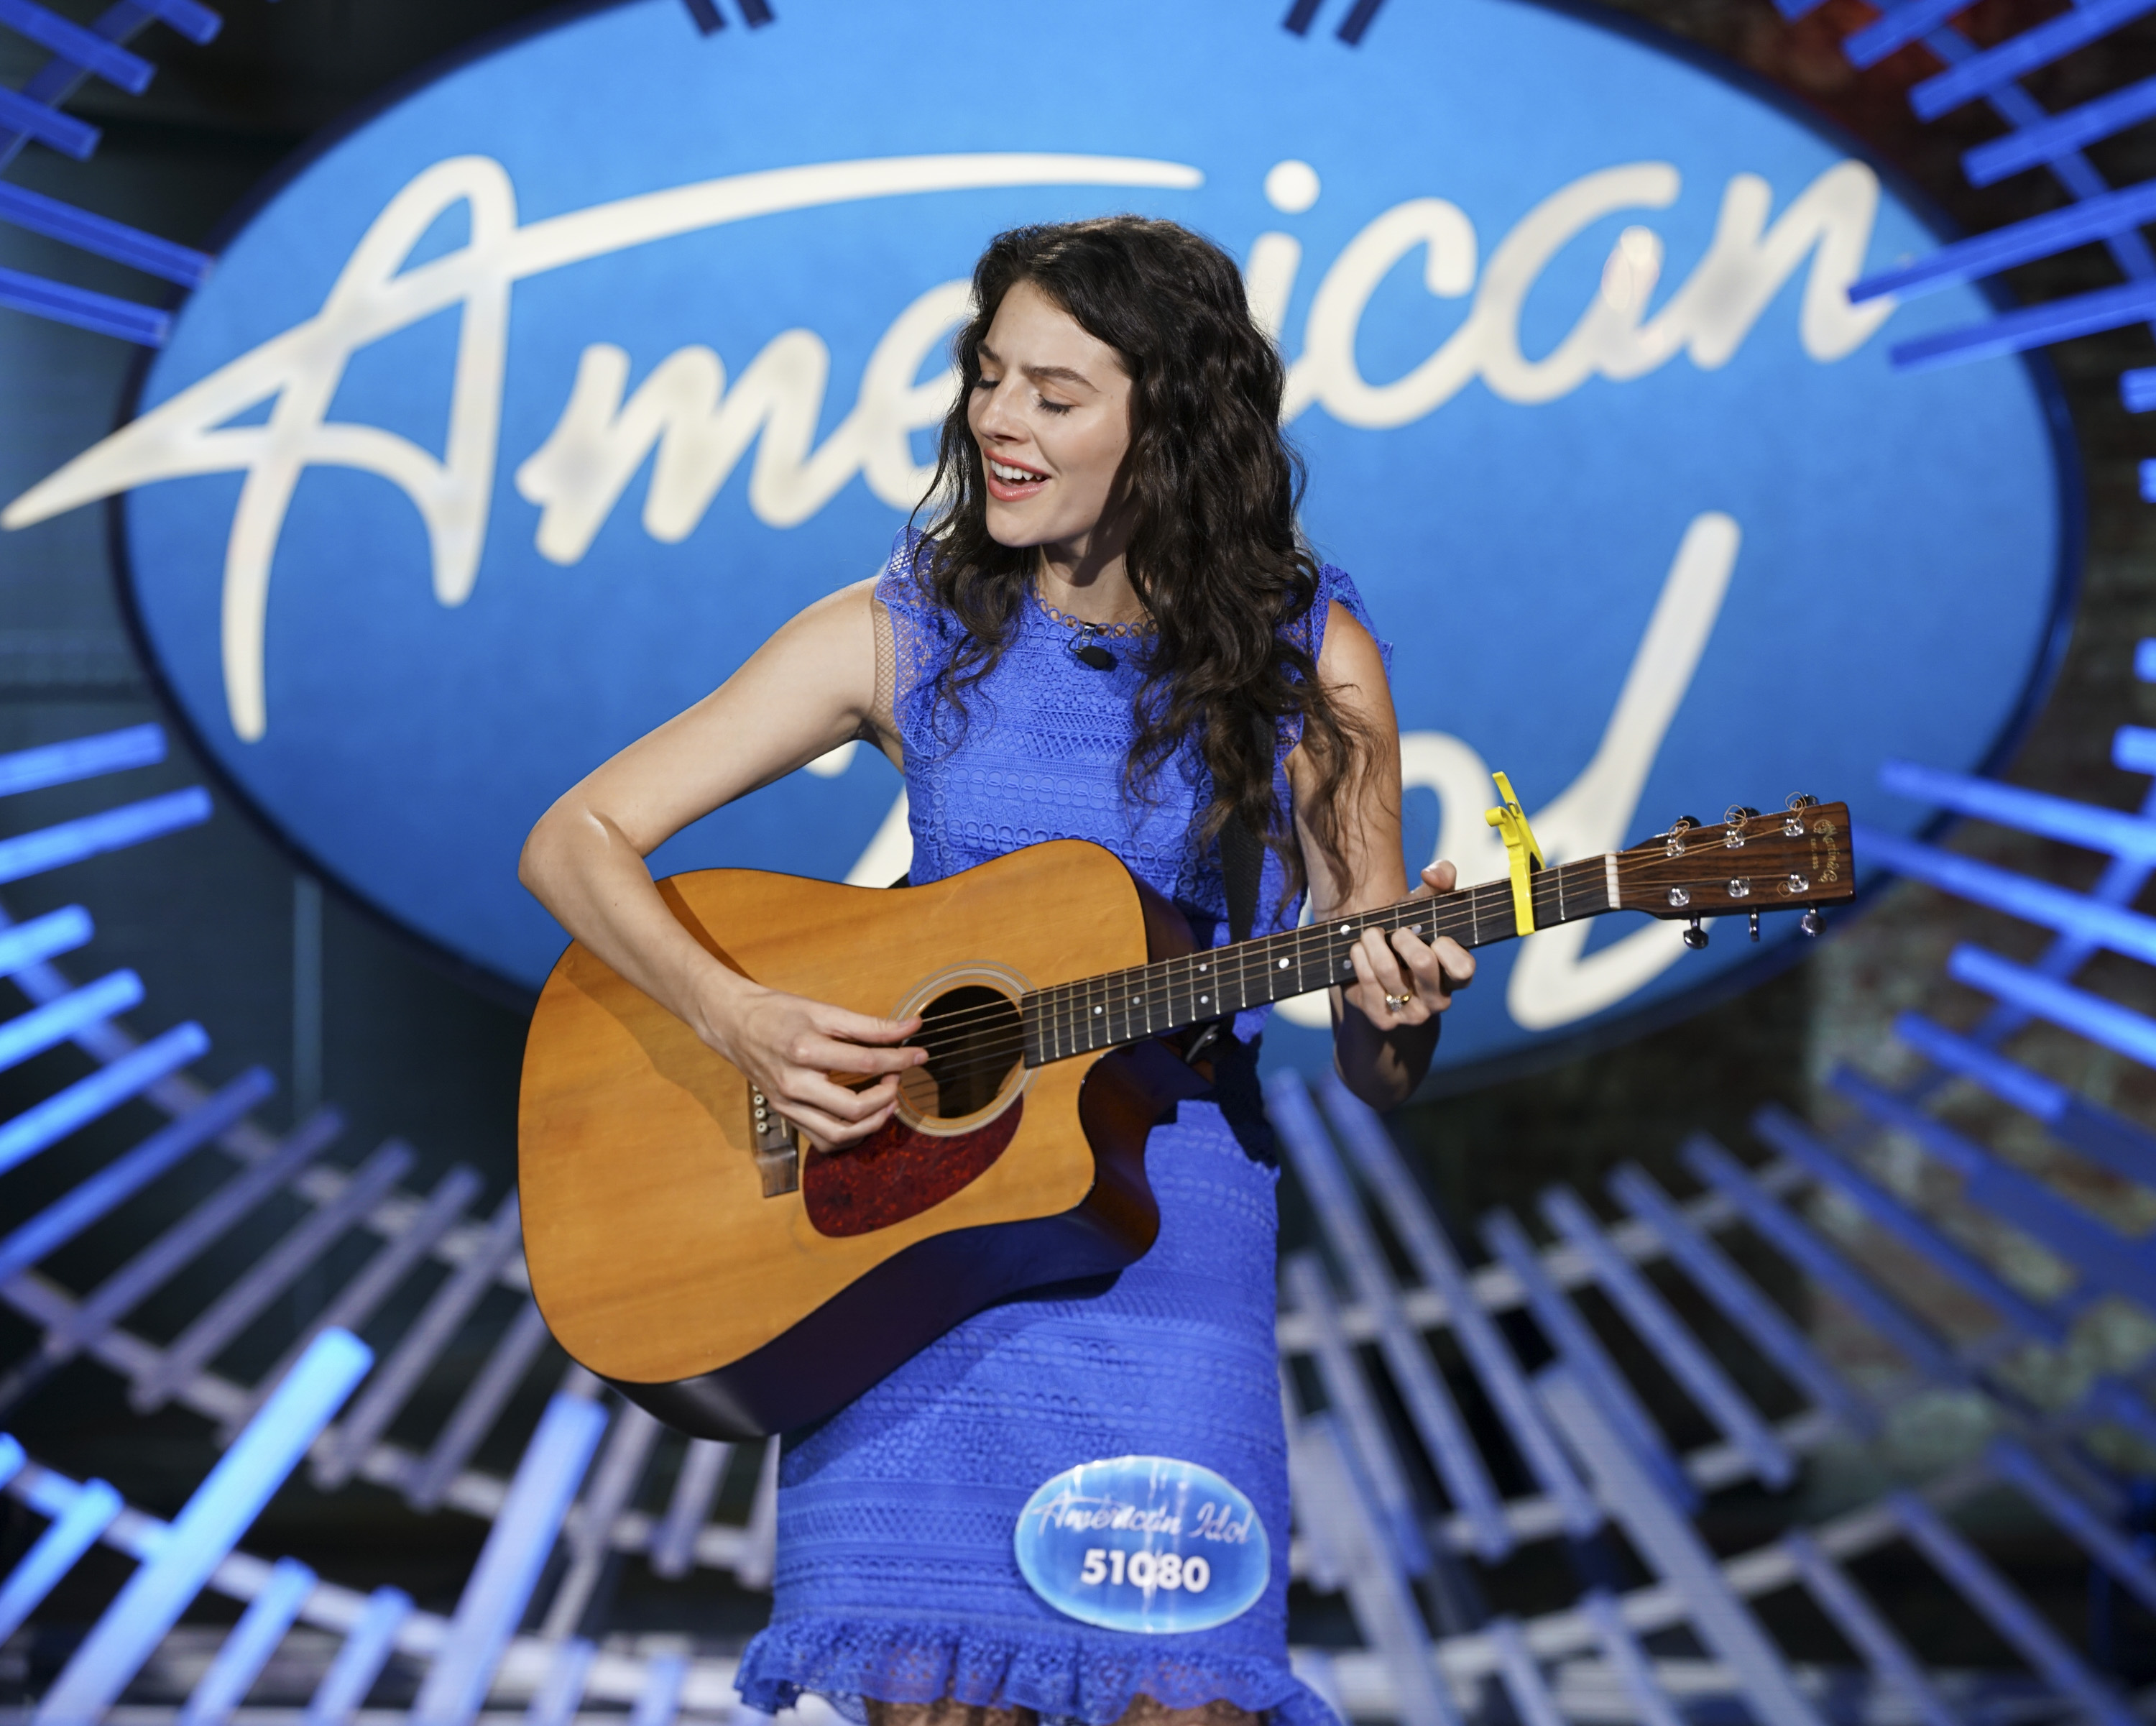 """Claremont Singer's """"American Idol"""" Audition to Air March 17"""